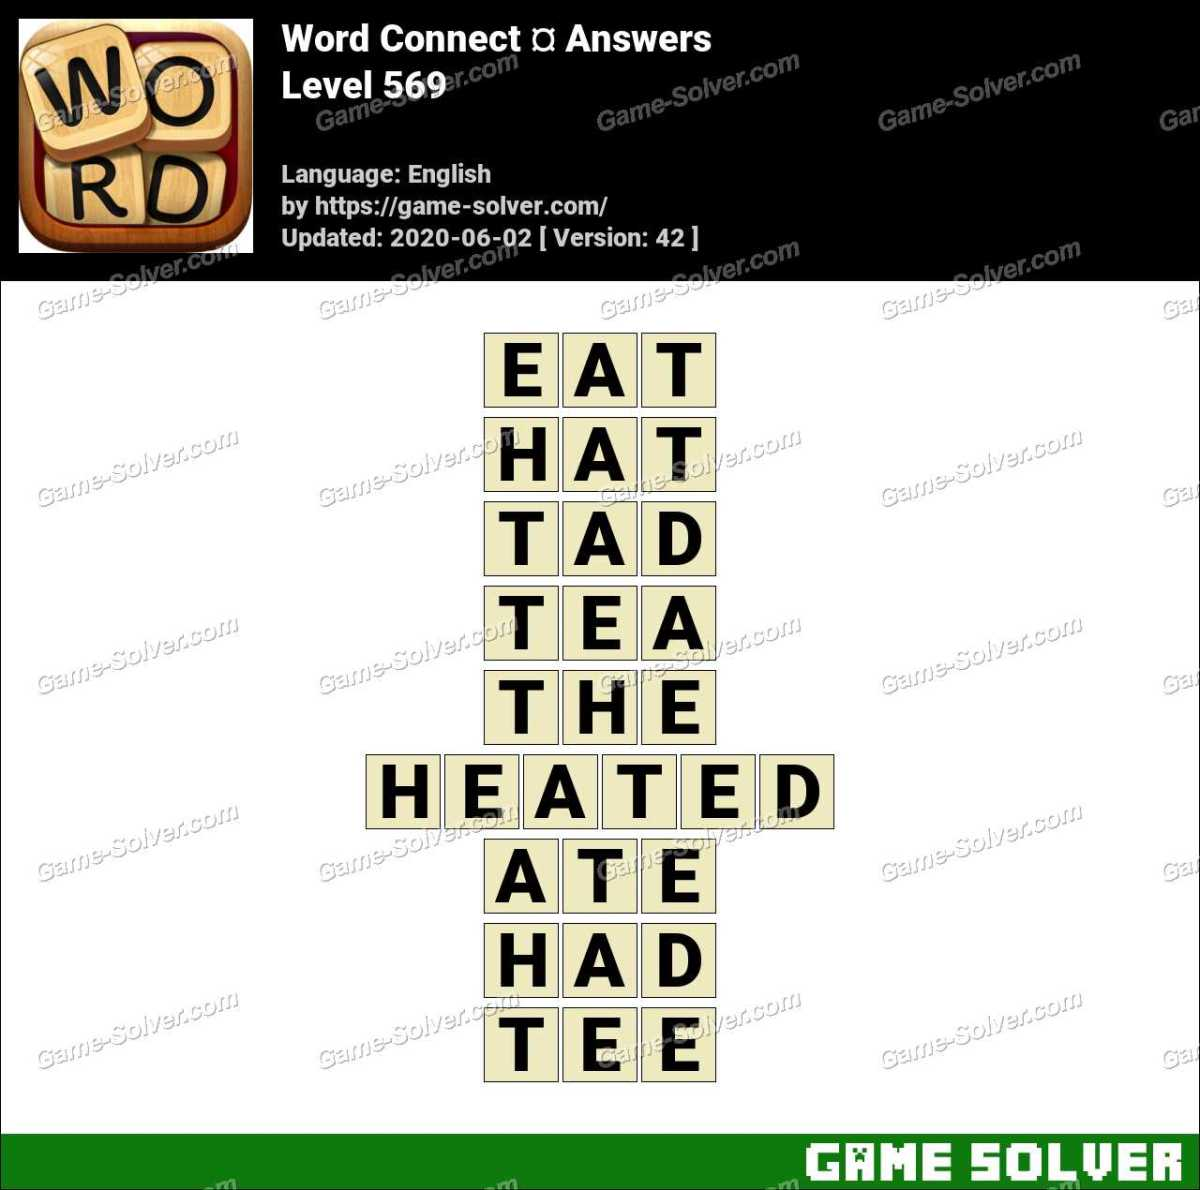 Word Connect Level 569 Answers